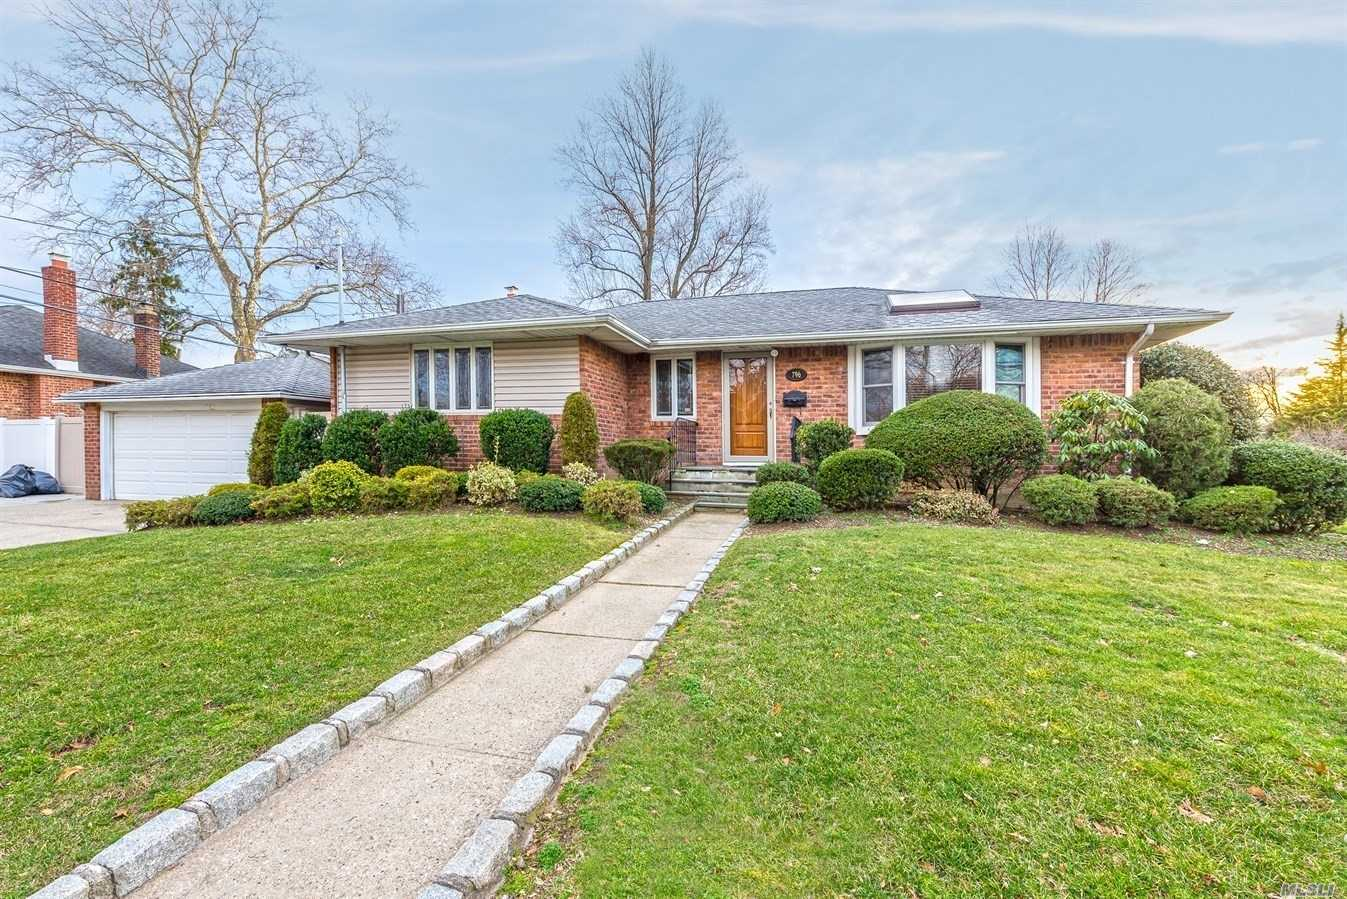 796 Bellmore Ave - East Meadow, New York